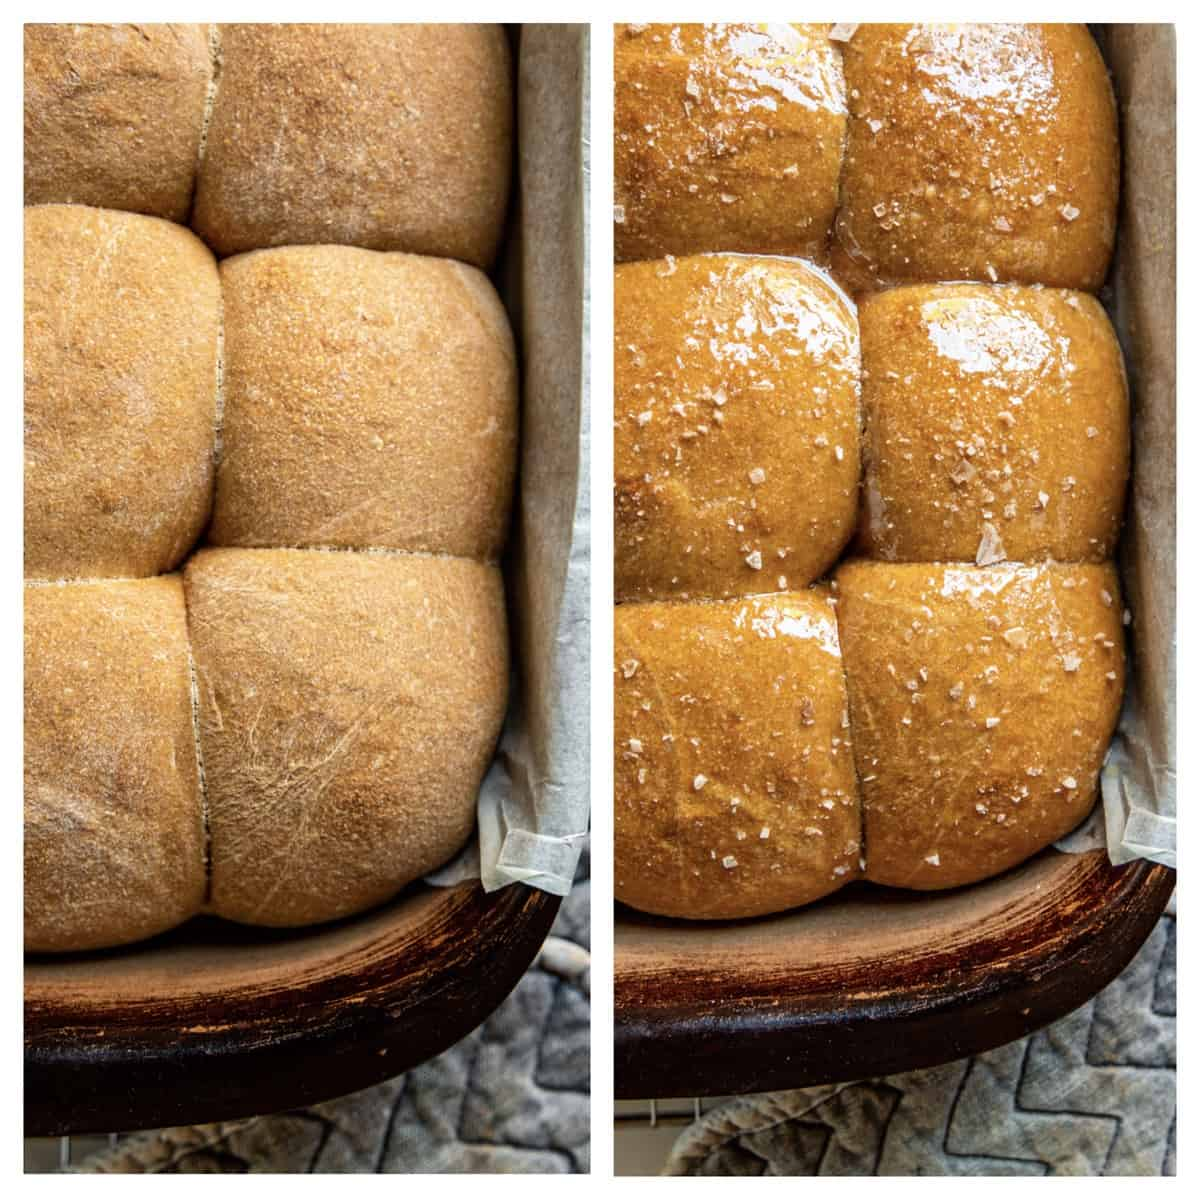 side by side photos: freshly baked whole wheat rolls in pan, and rolls with melted butter and sea salt flakes on top